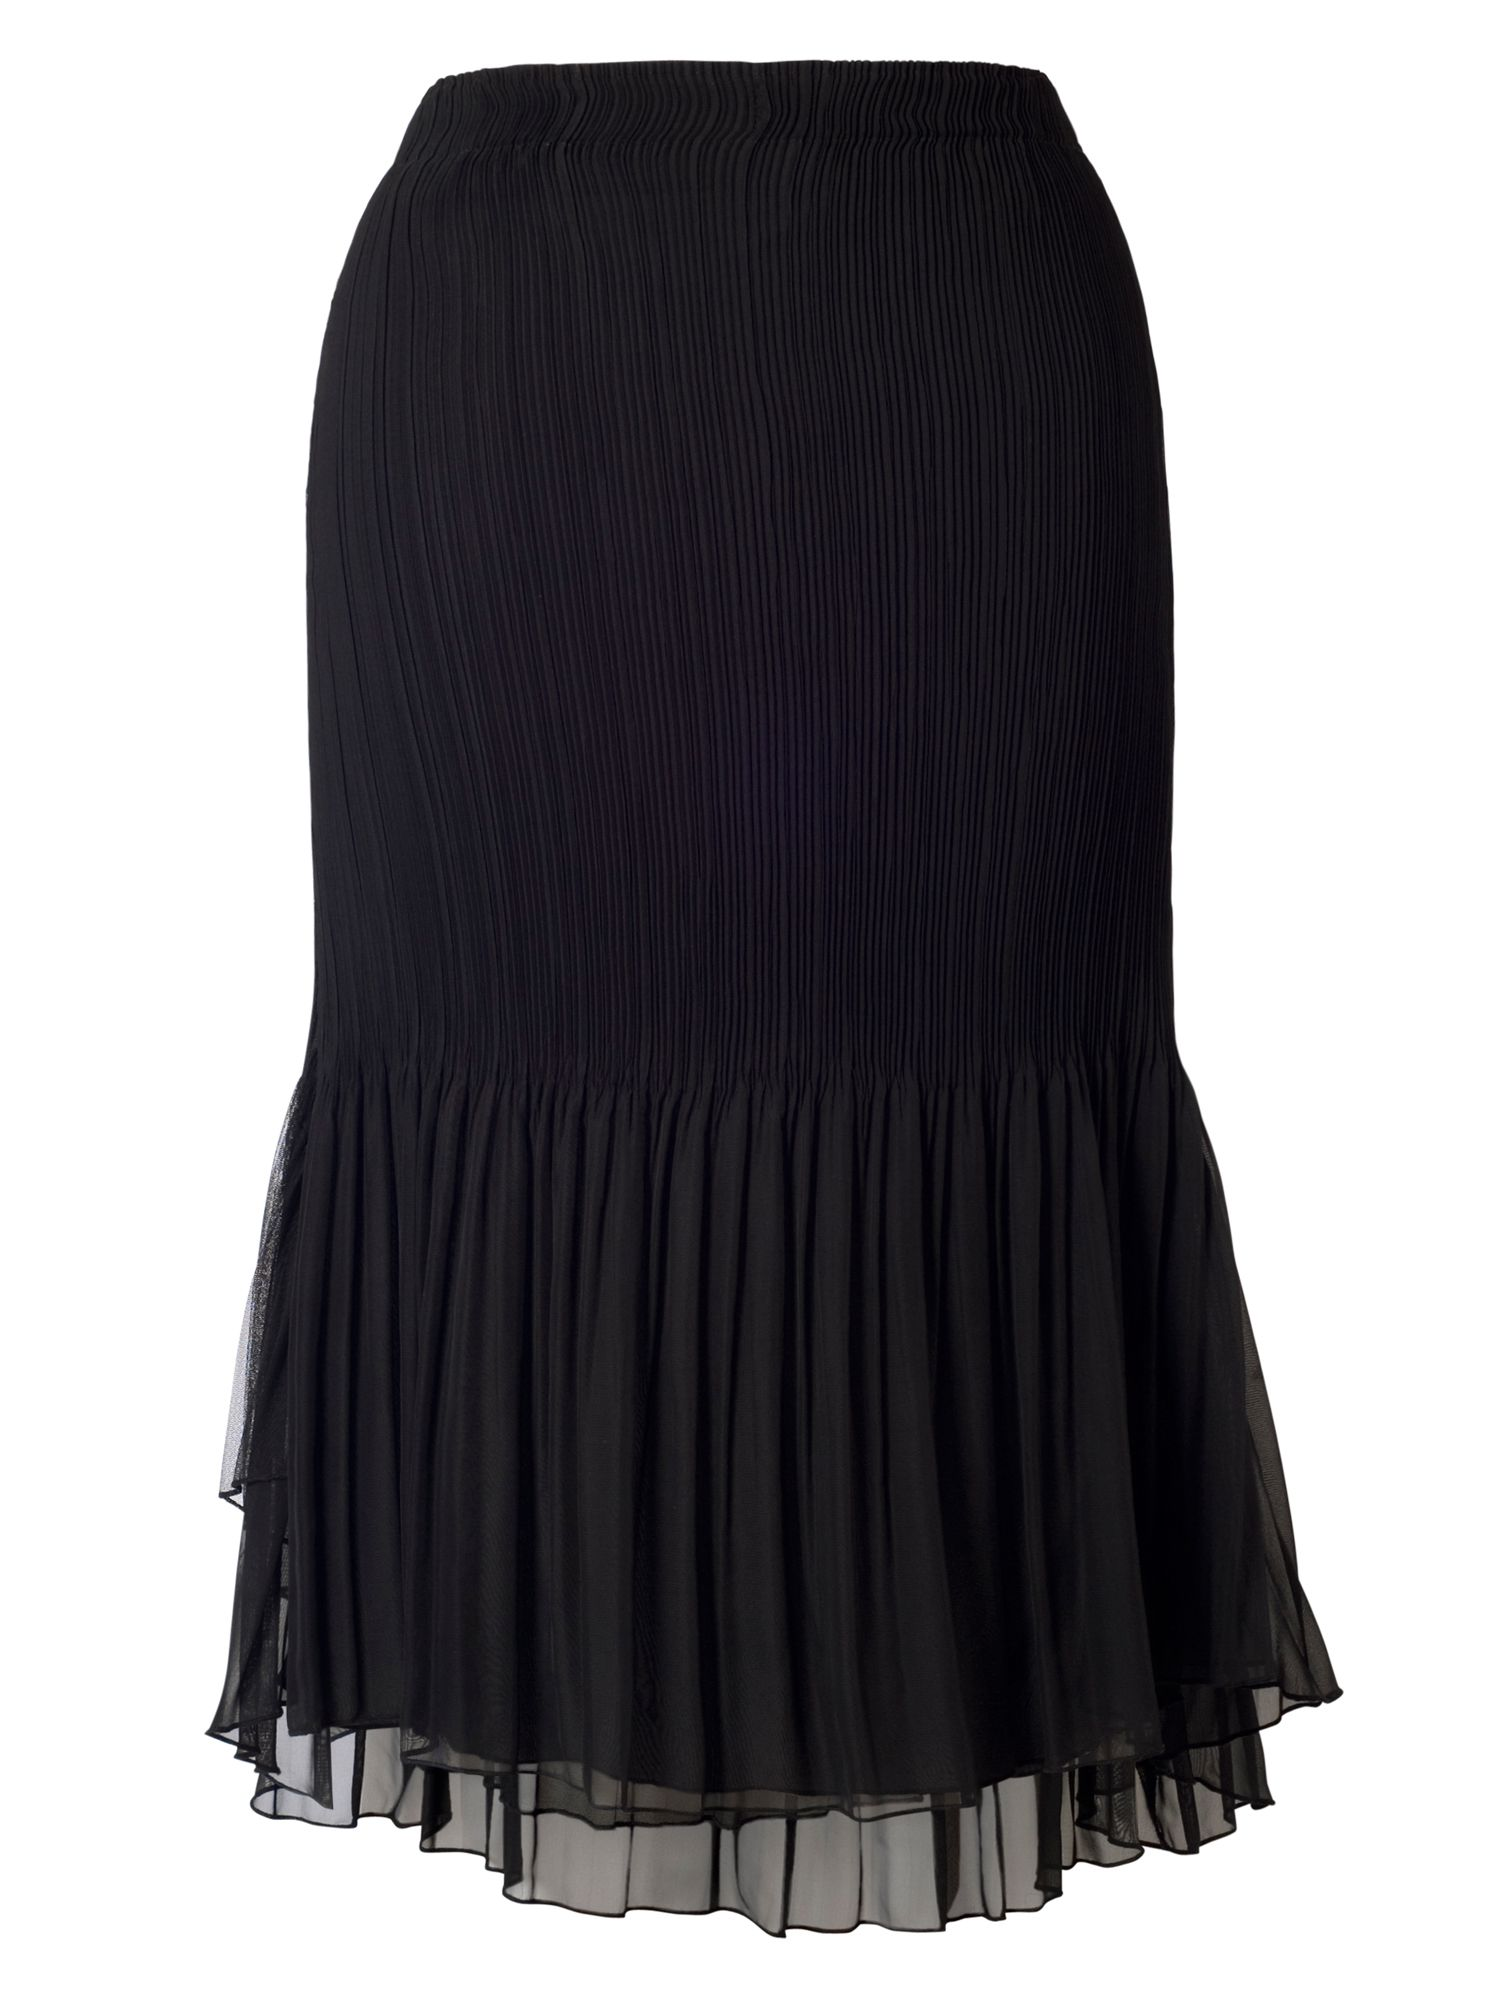 Chesca Plus Size Black Mesh Trim Pleat Skirt, Black